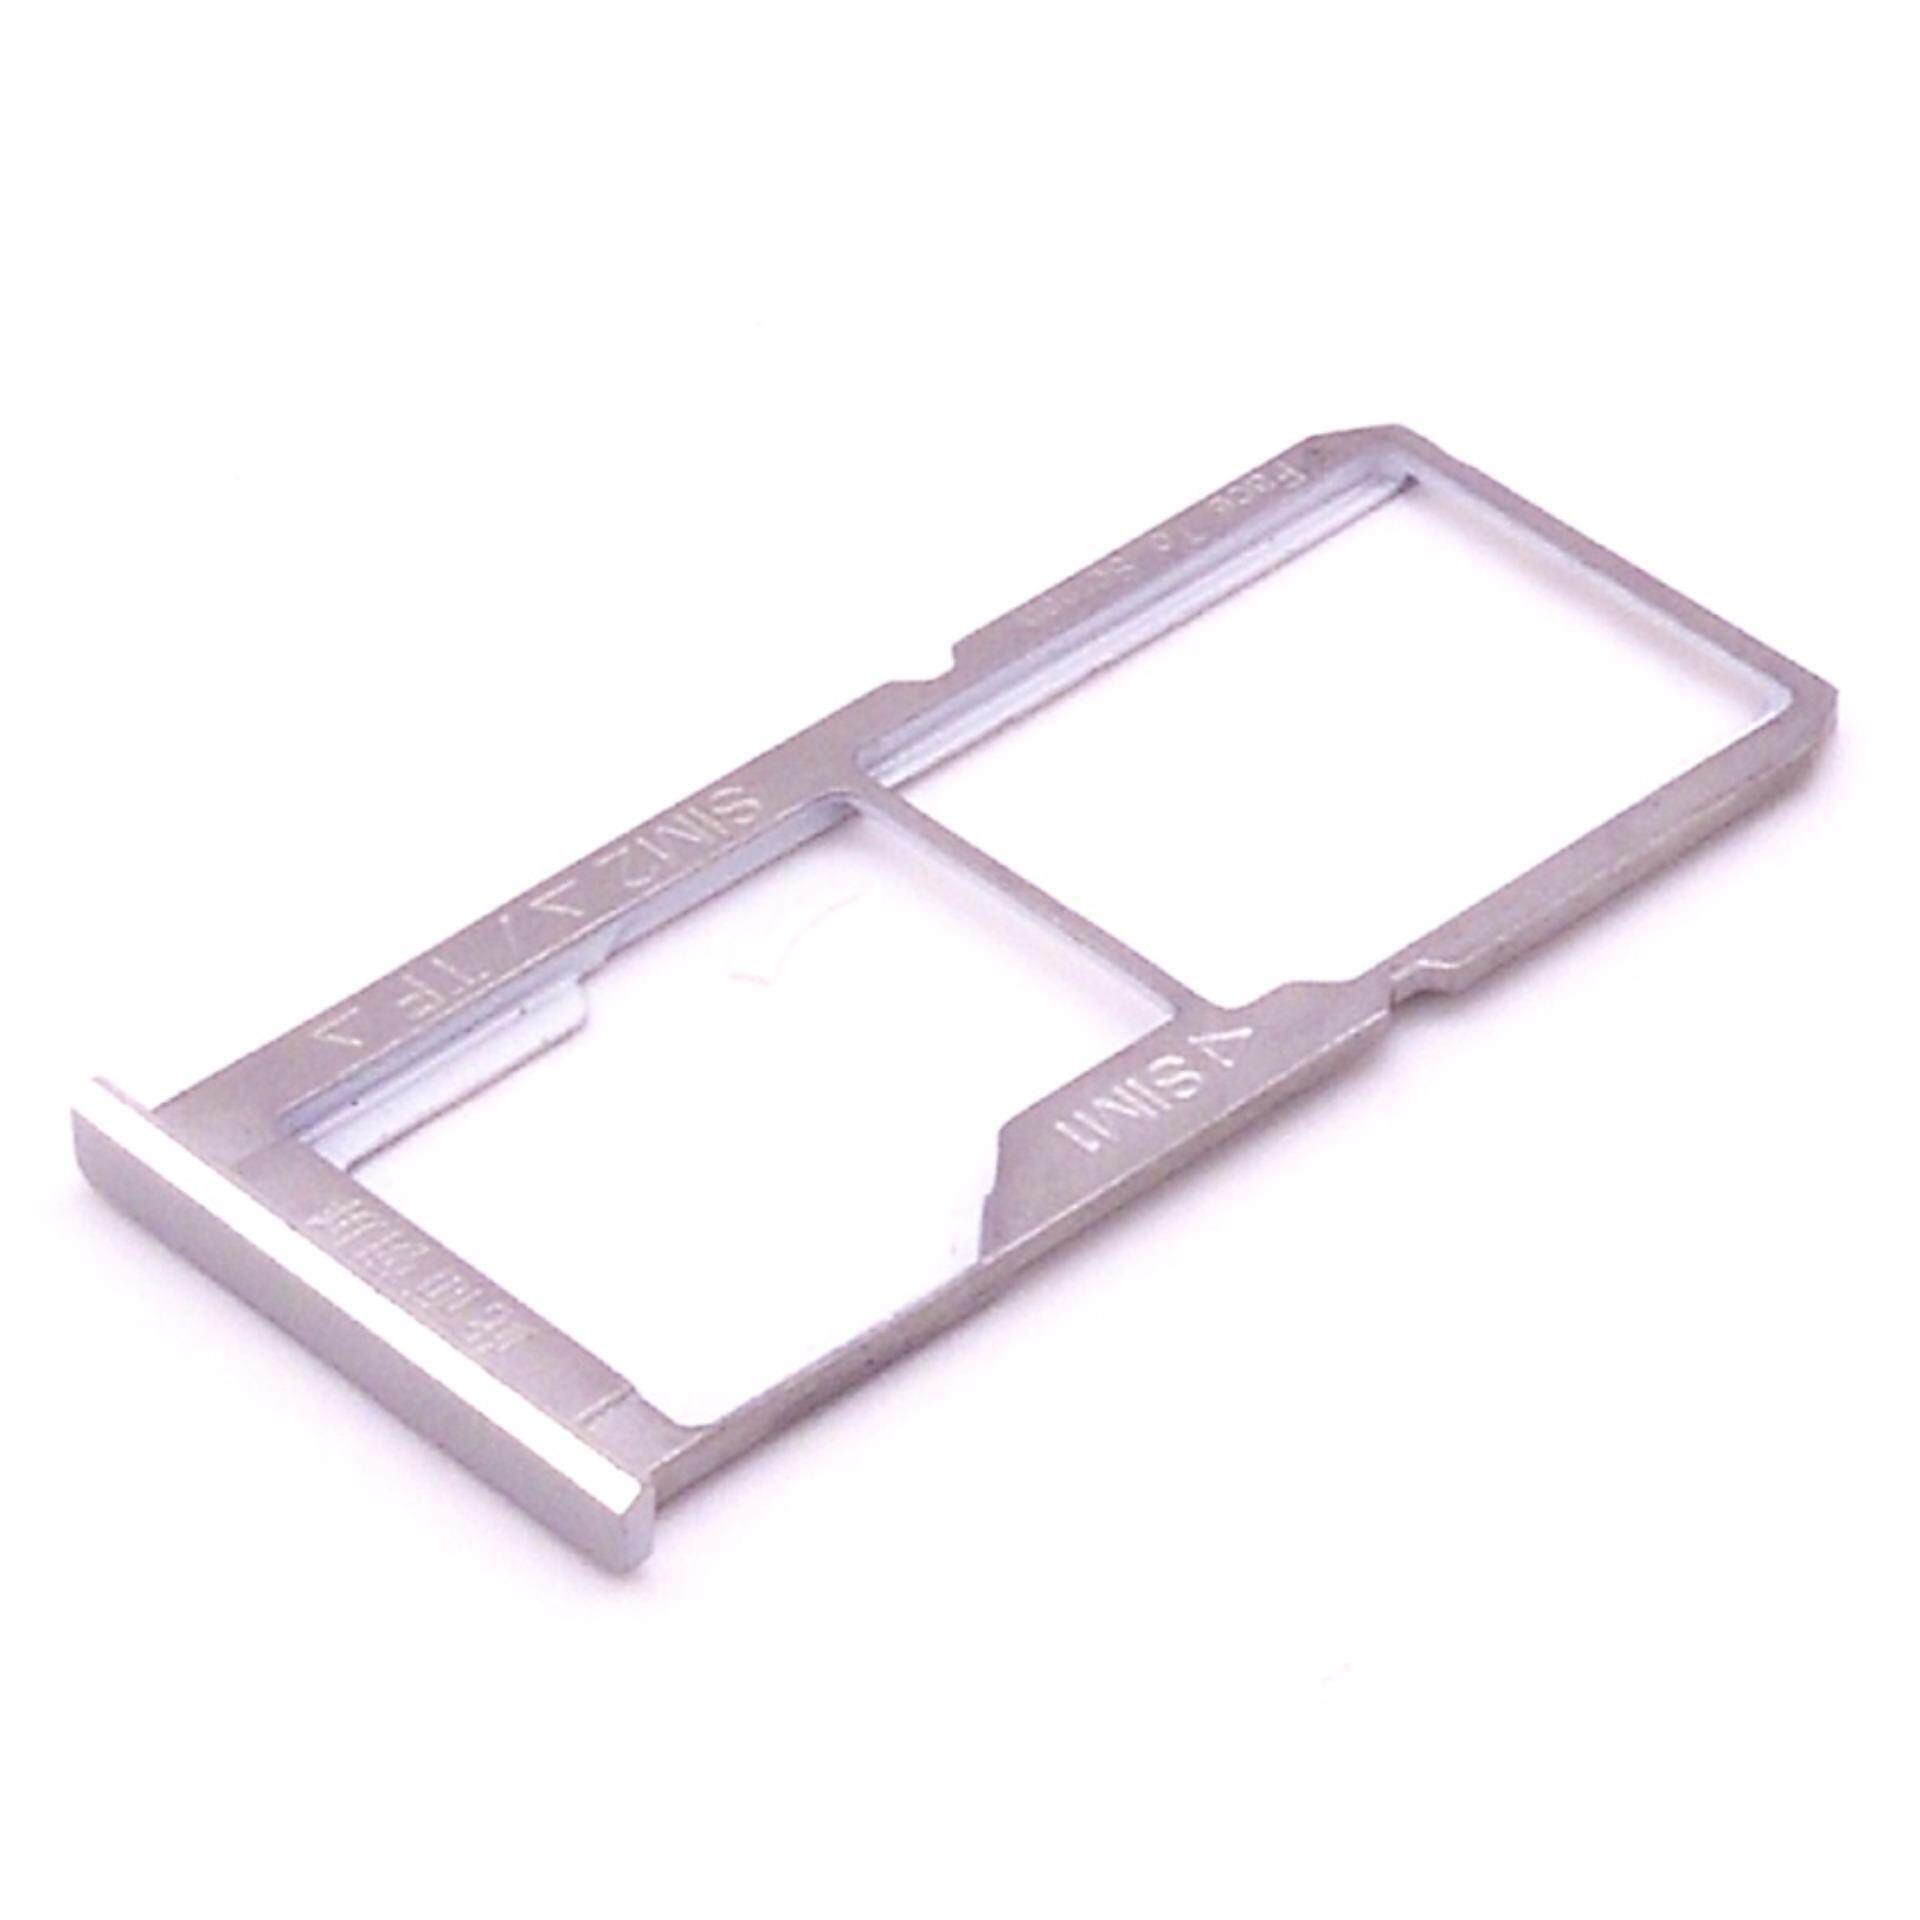 SIM Card Tray Slot Holder Repalcement for Oppo R7